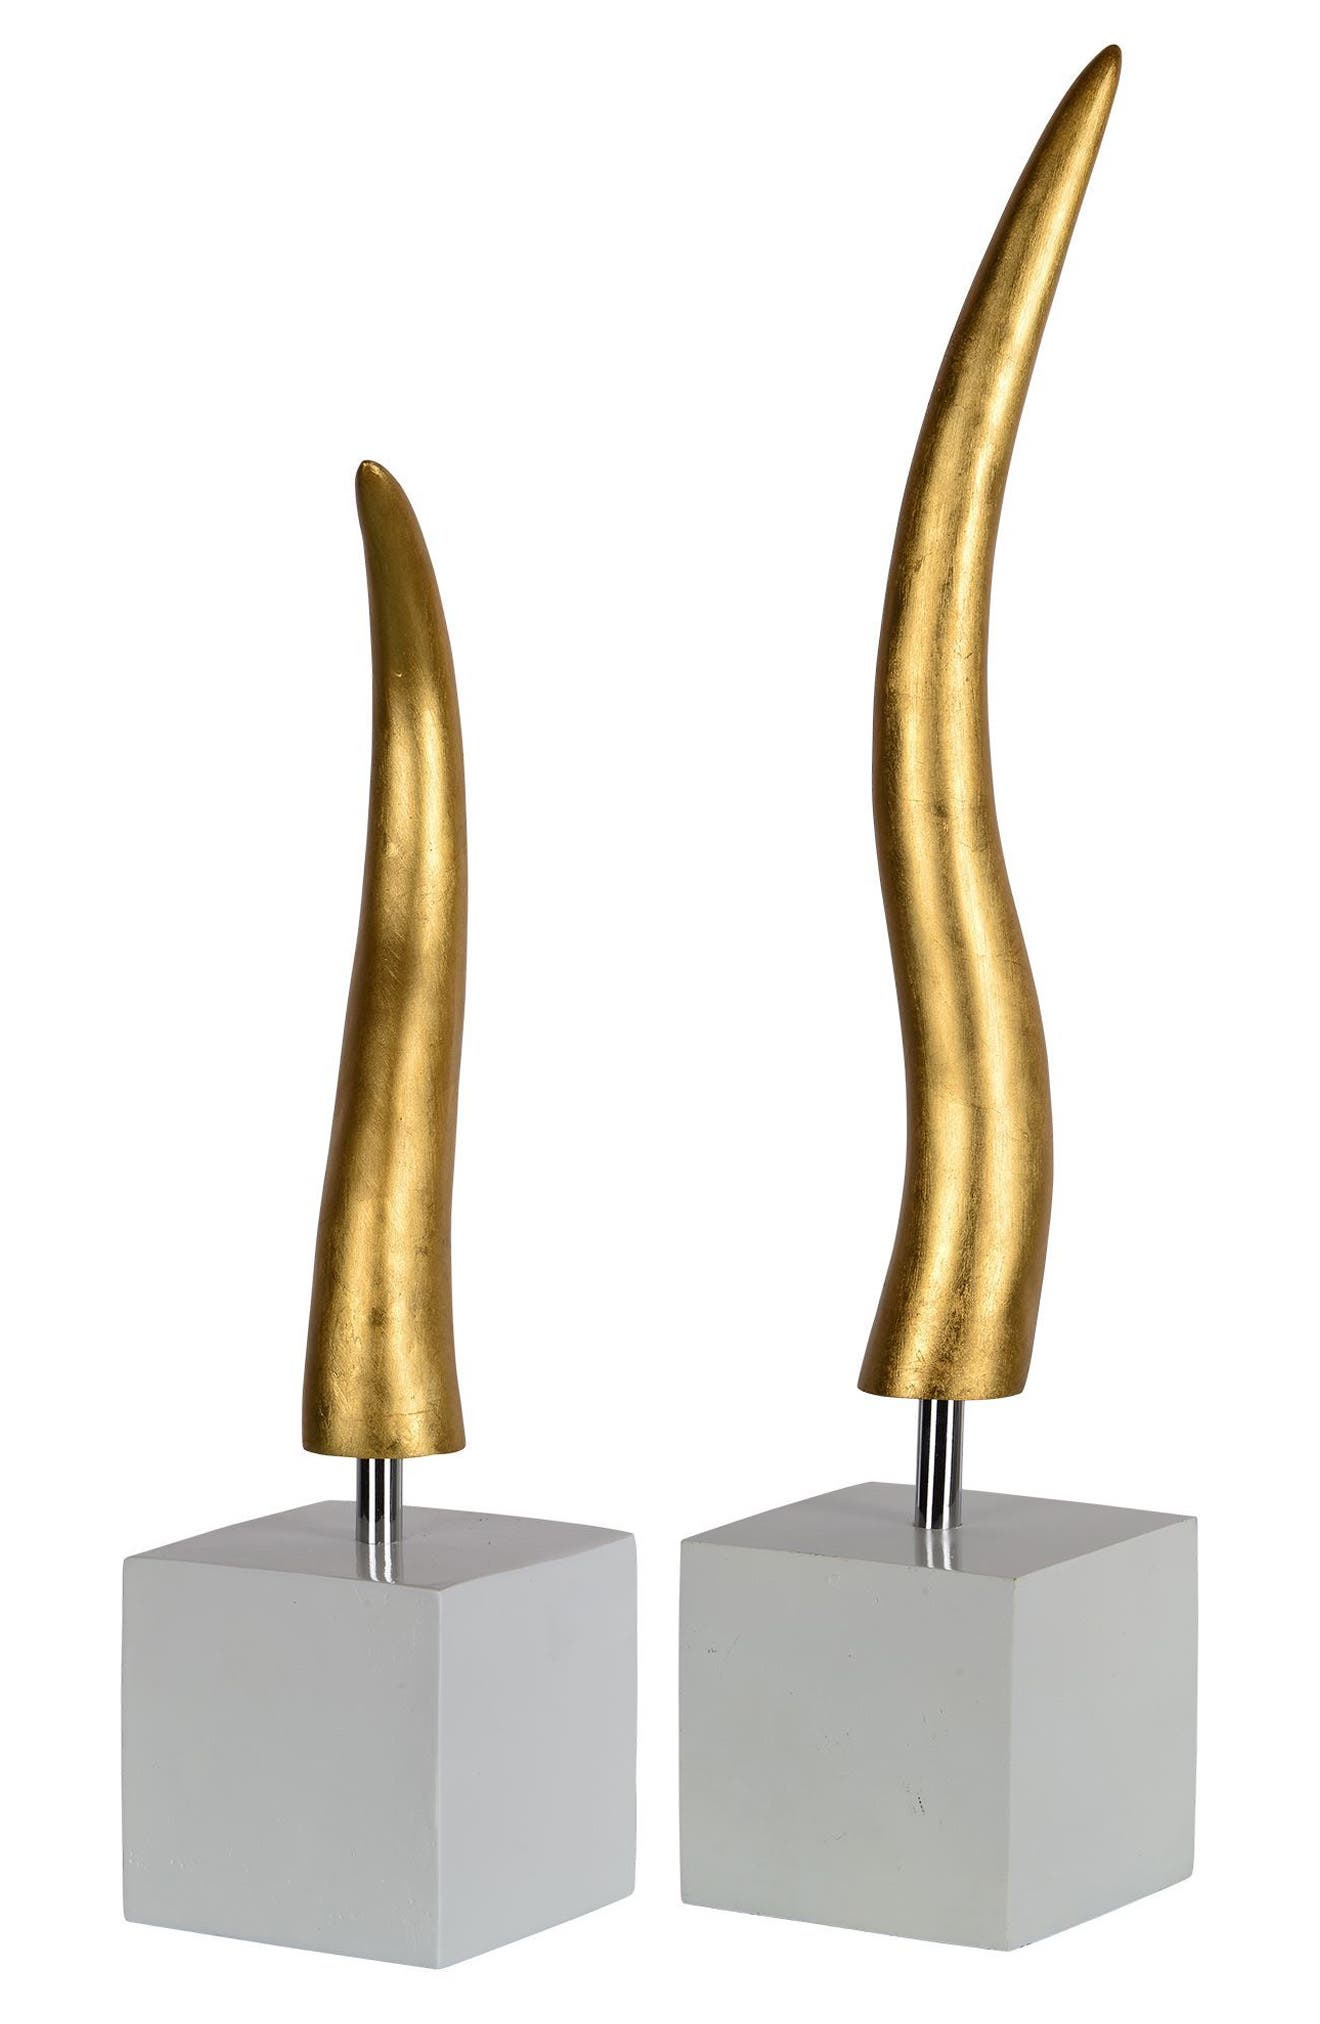 Osage Set of Two Statues,                             Alternate thumbnail 2, color,                             710